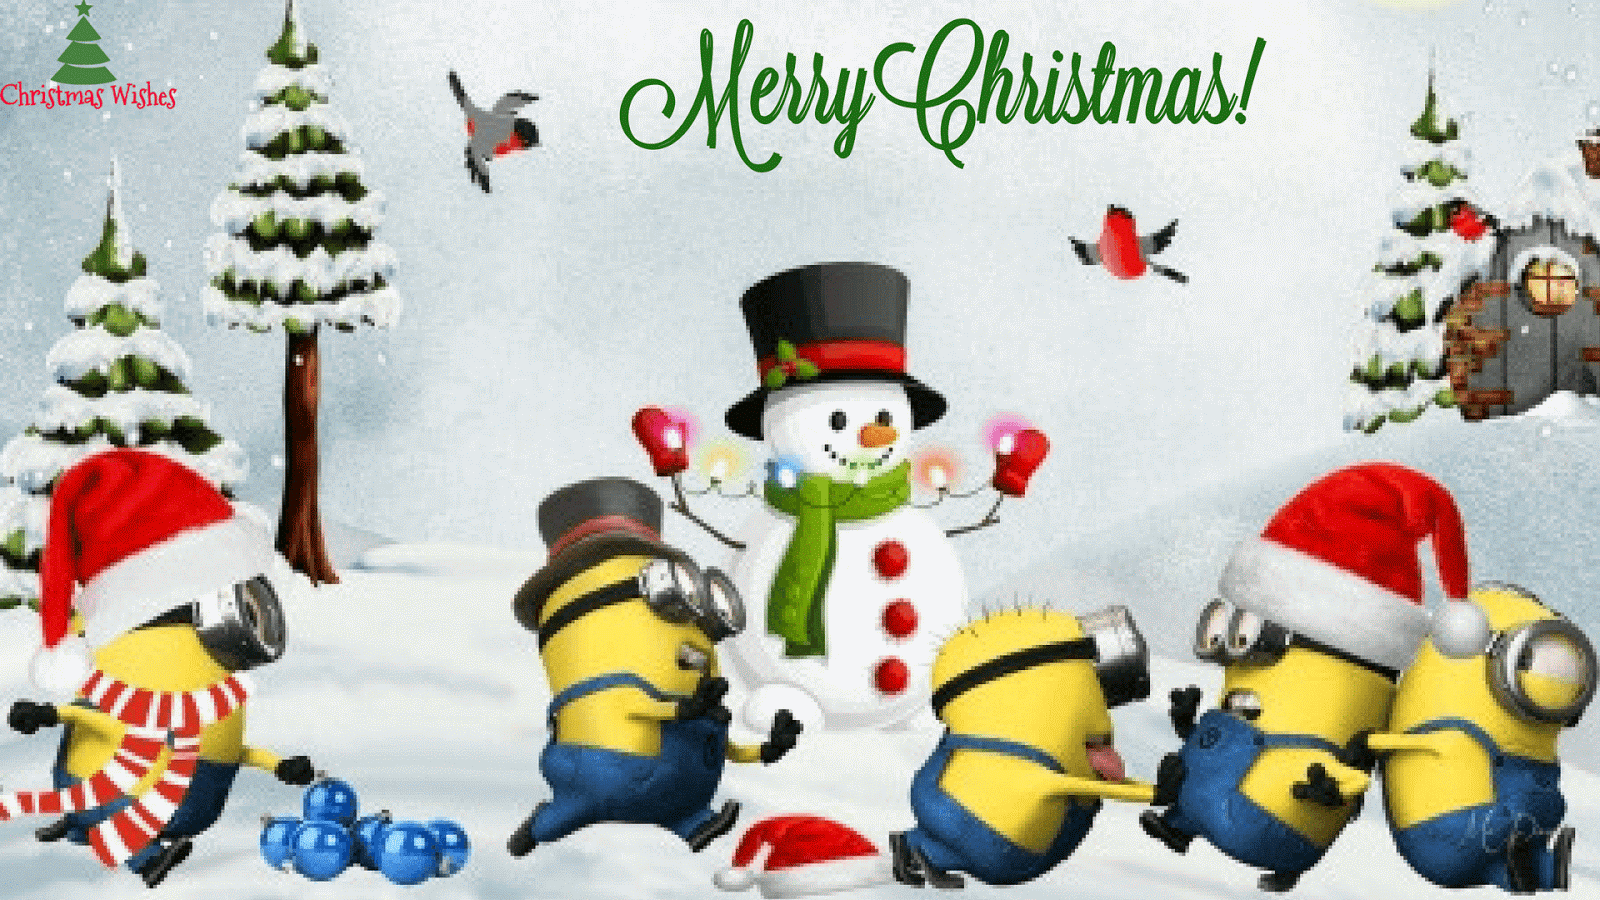 Funny Minion Merry Christmas Wallpapers Sayings: Weihnachtszeit Wallpaper